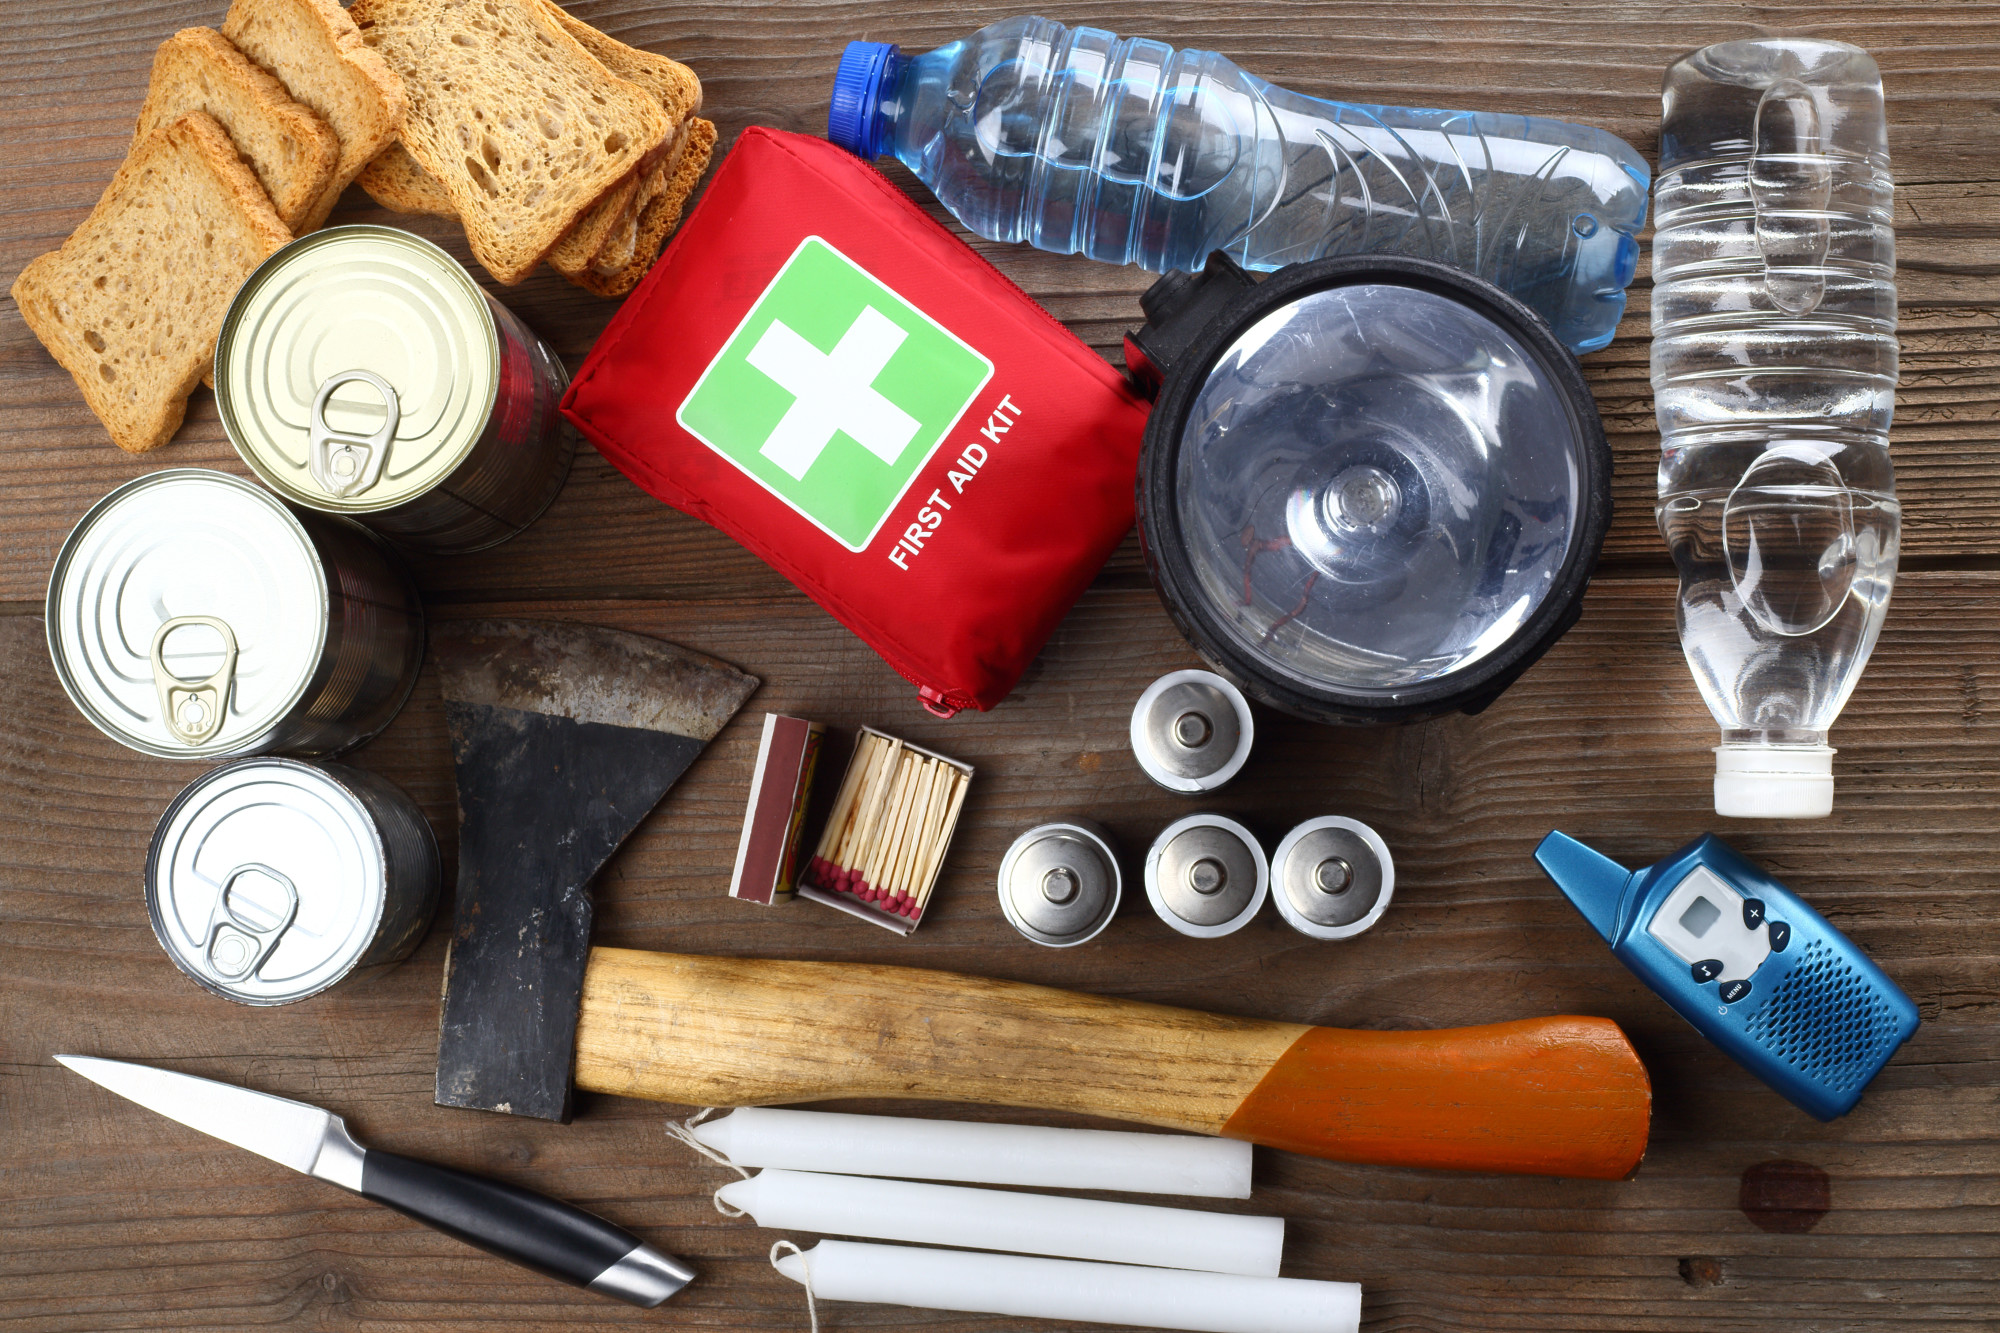 How to Build a DIY Emergency Kit for Your Home